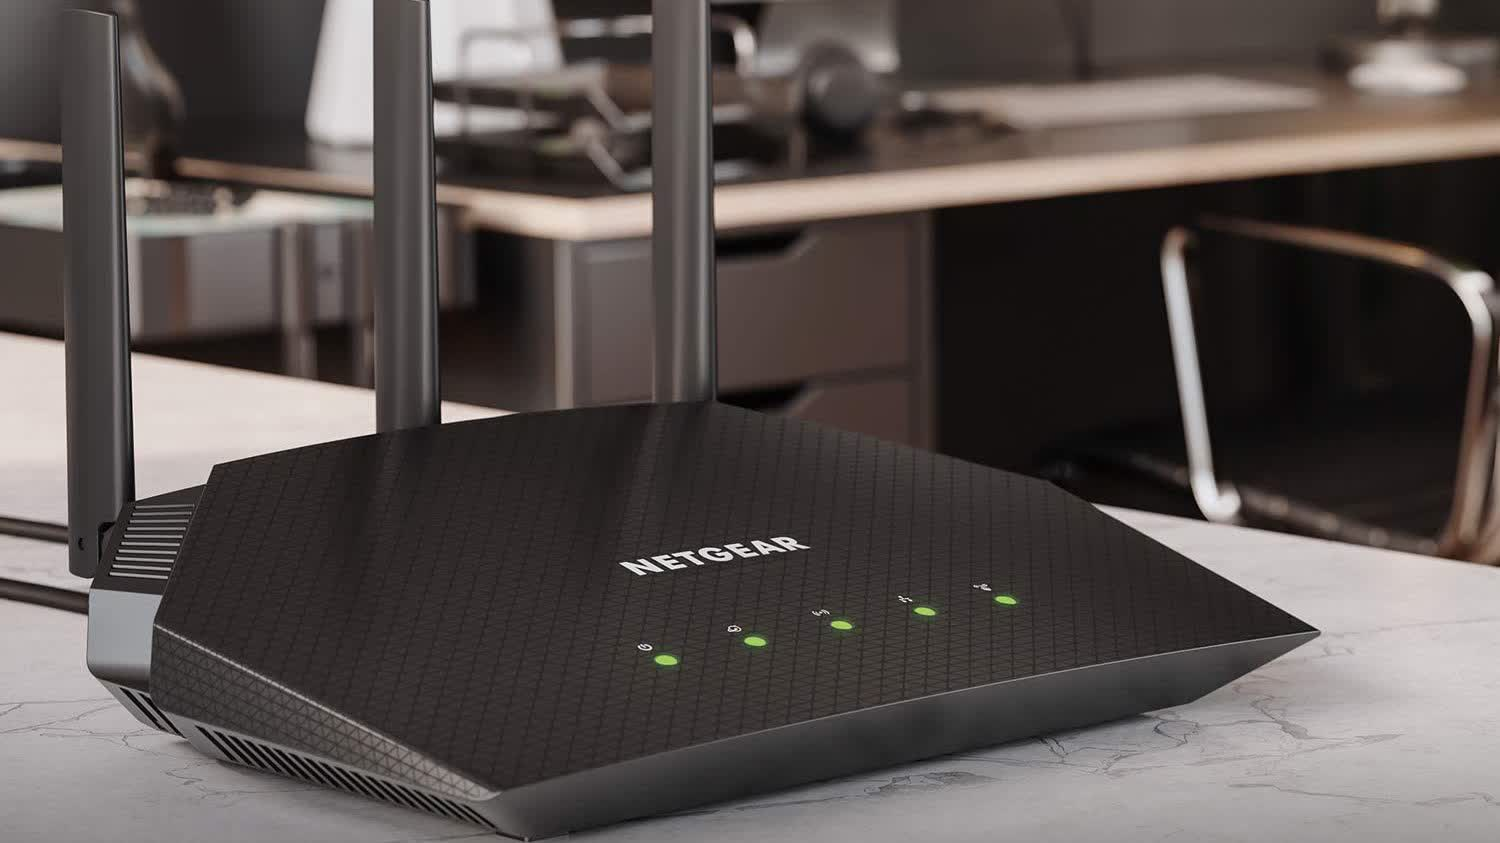 Own one of these 11 Netgear routers? If so, patch it immediately